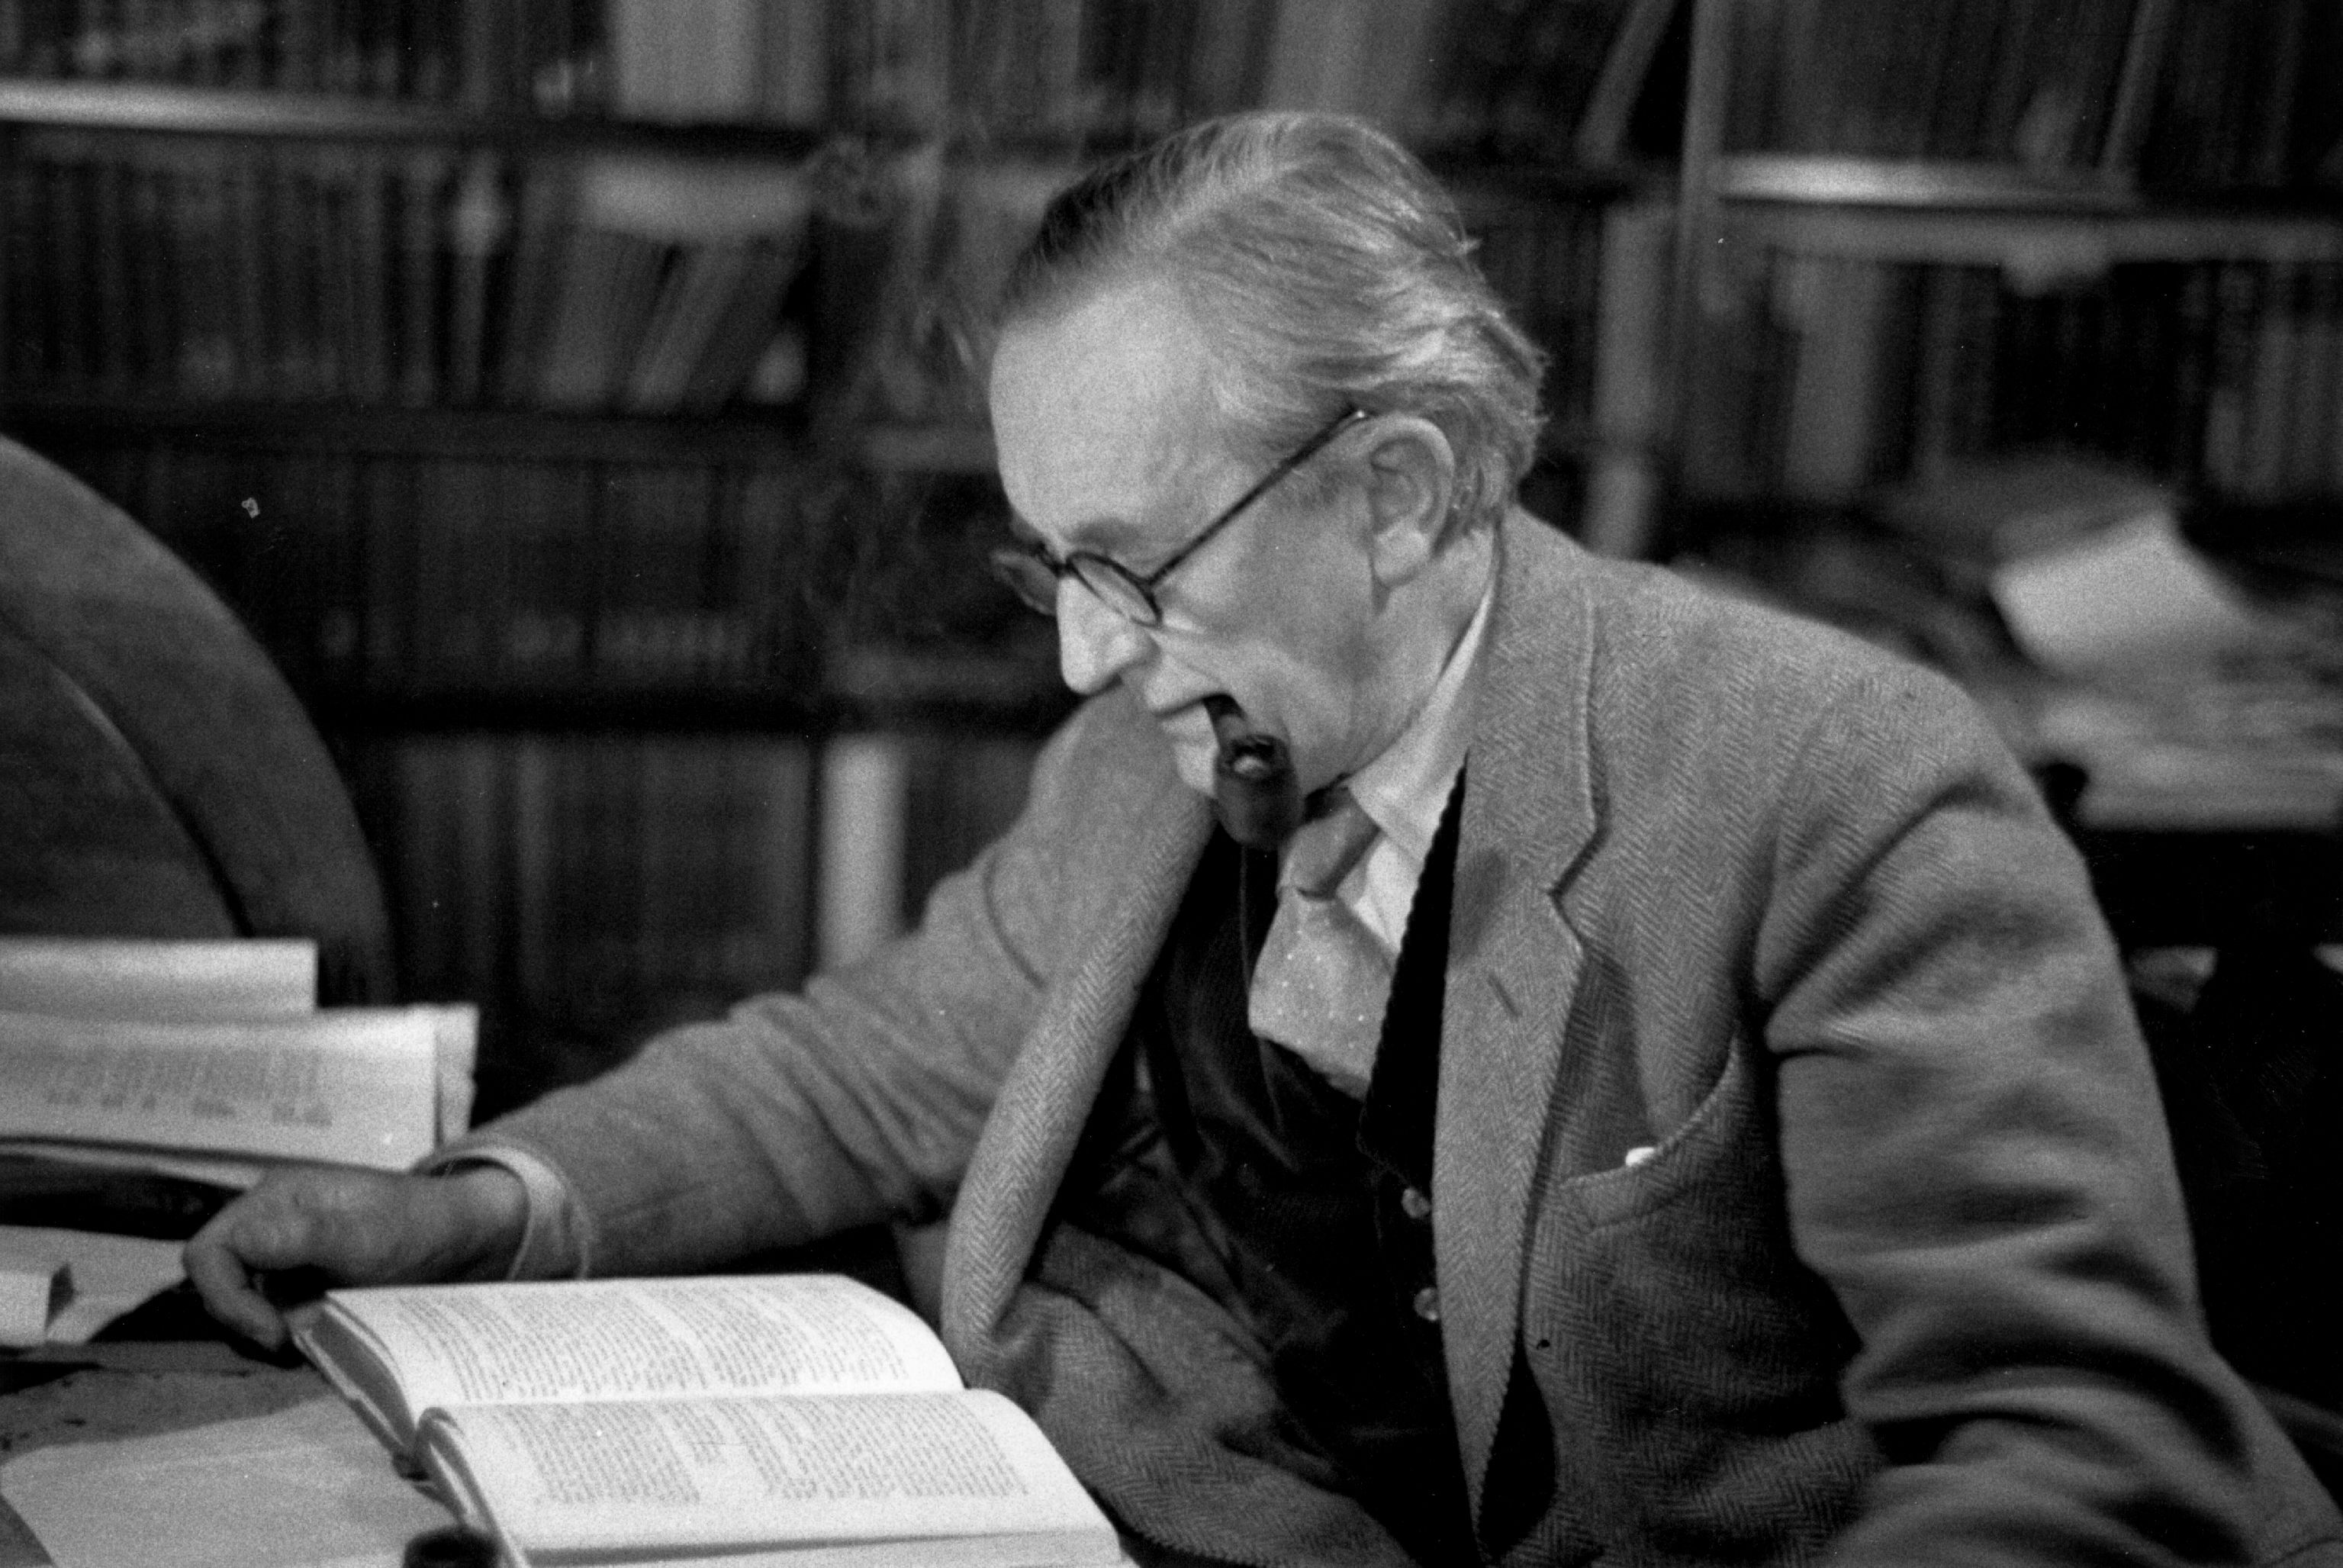 J R R Tolkien writing